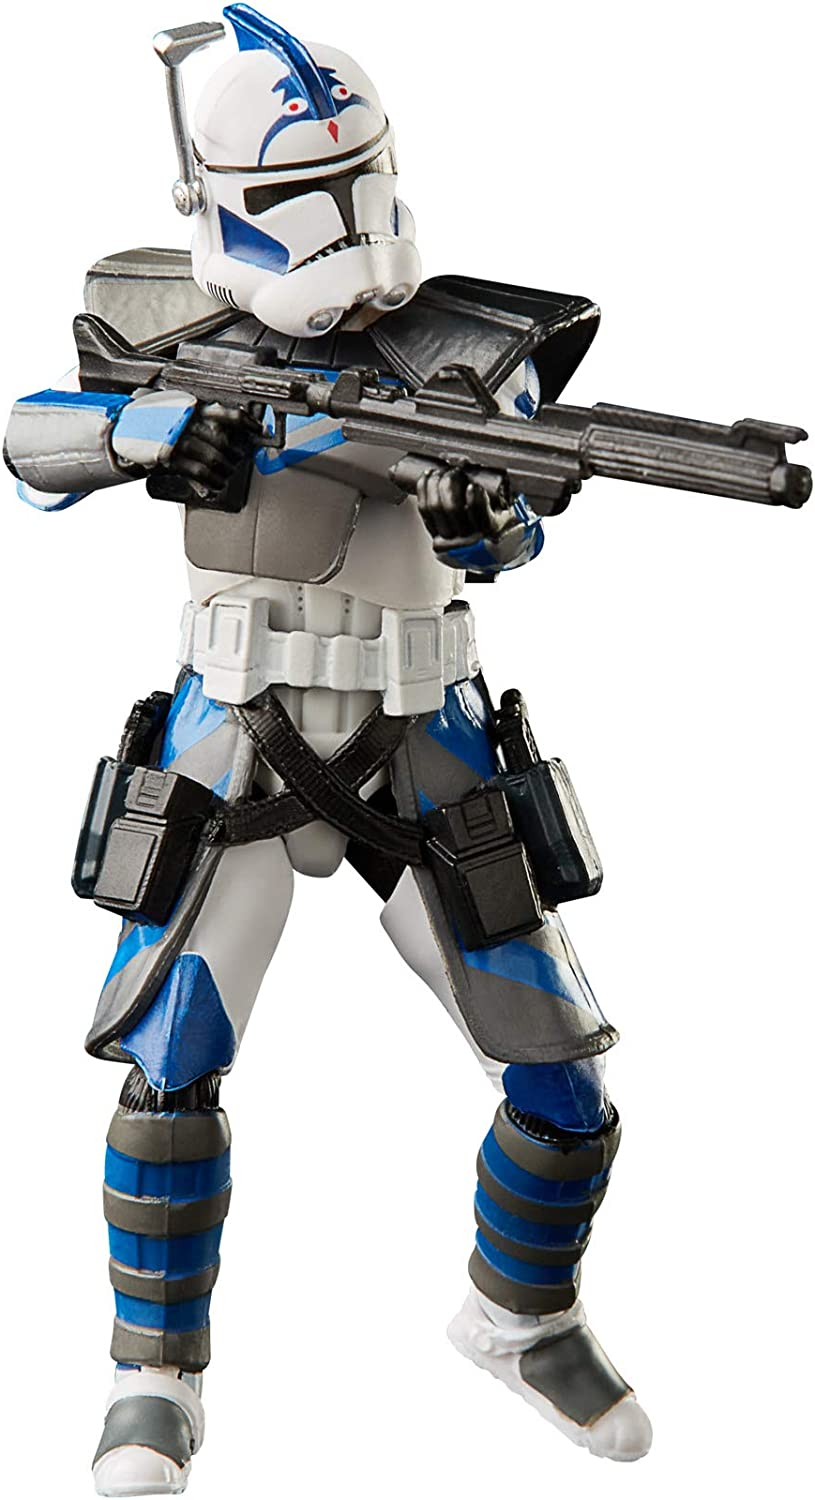 Star Wars The Vintage Collection Sale SALE% OFF 3.75-Inc Trooper Tucson Mall Toy ARC Fives